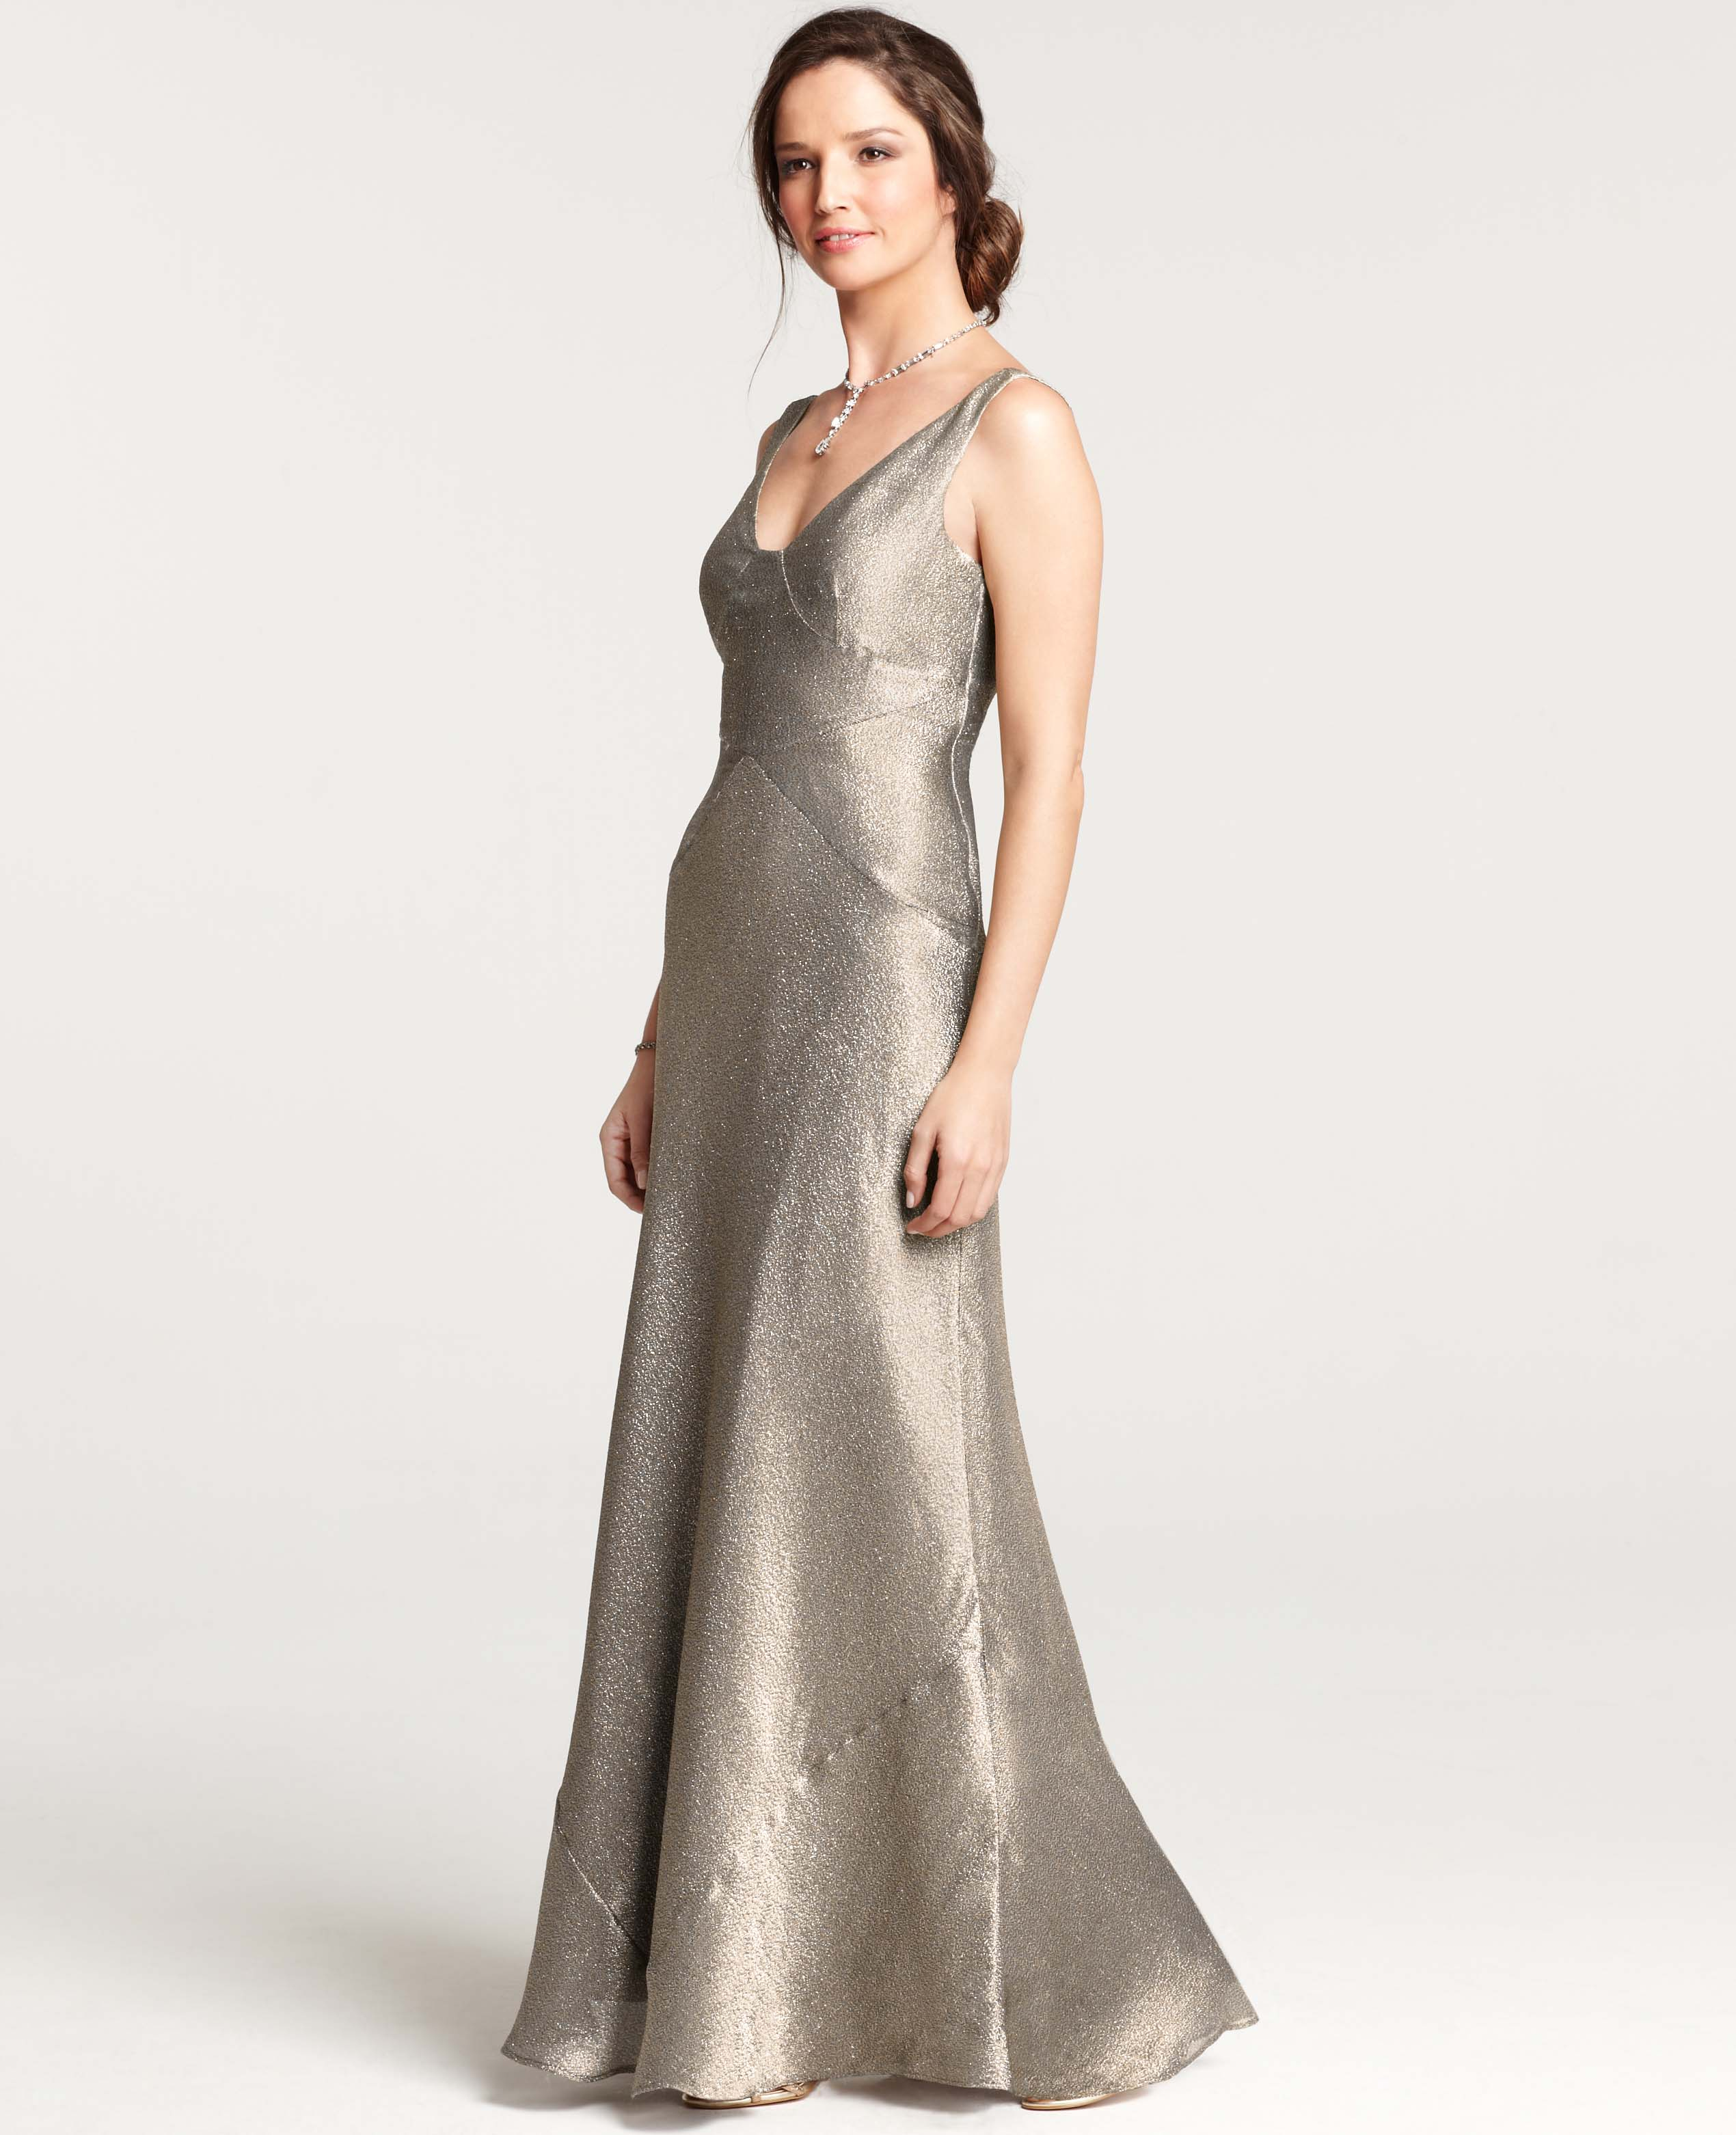 Lyst - Ann Taylor Gold Lame V-neck Gown in Metallic